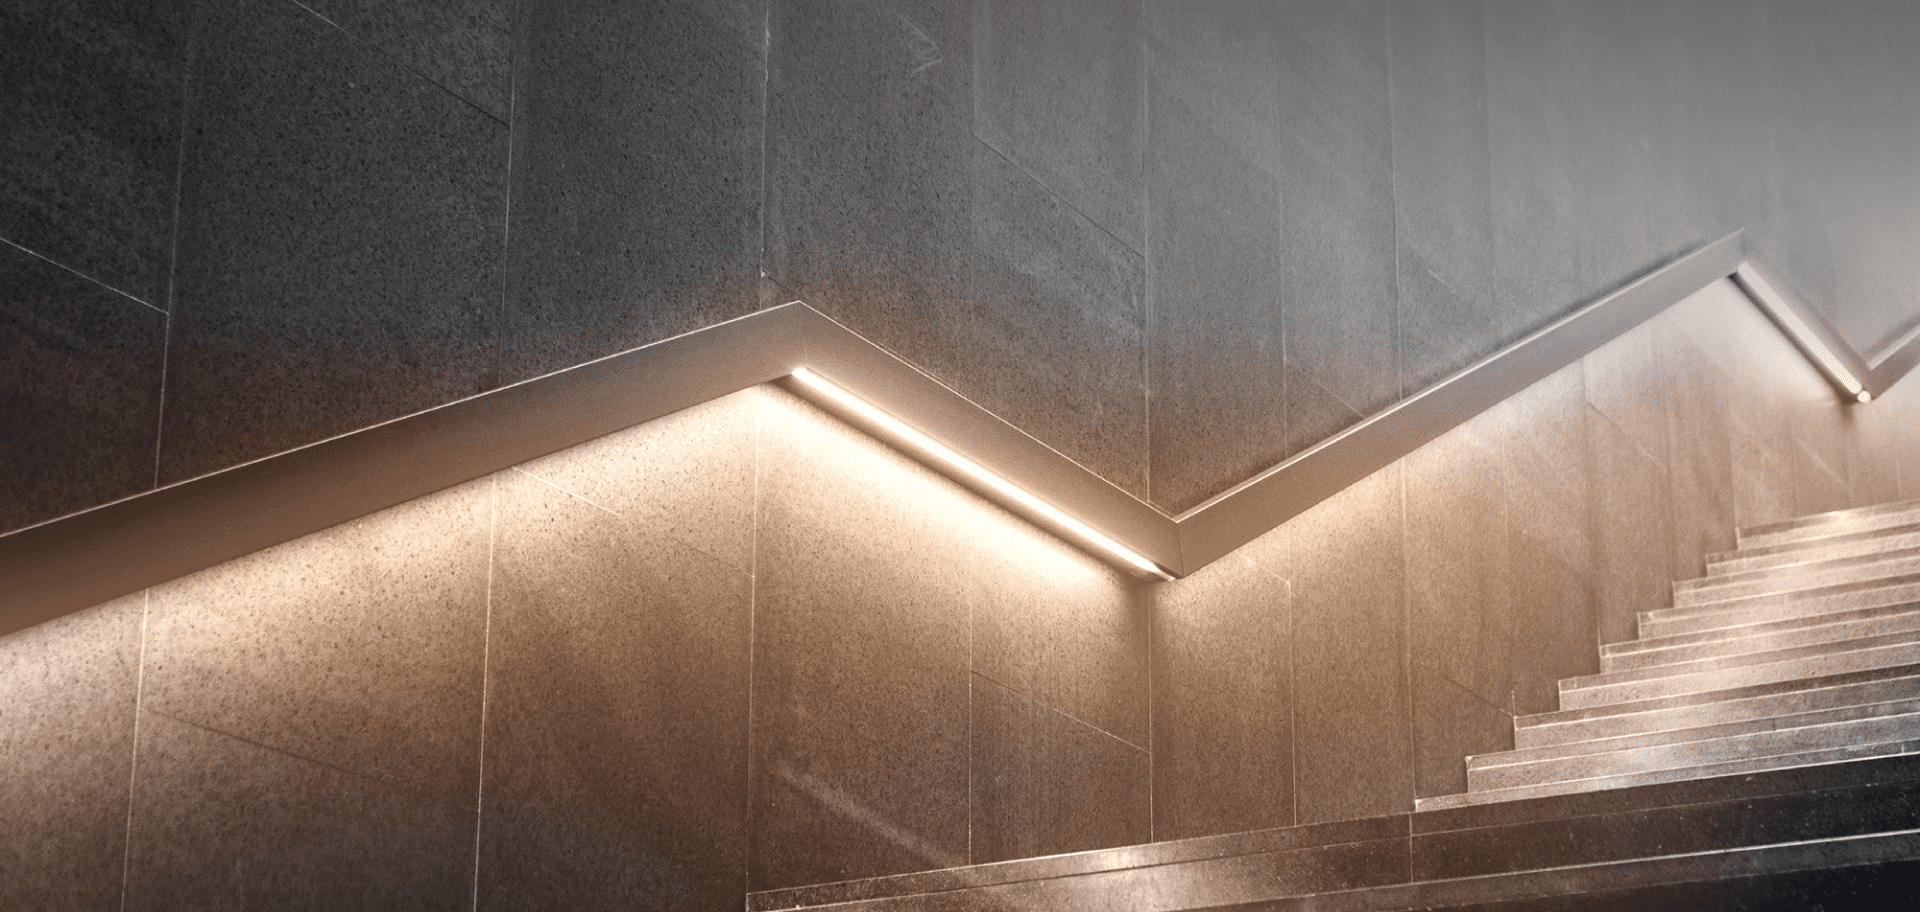 Fairsure Staircase lights on showing growth